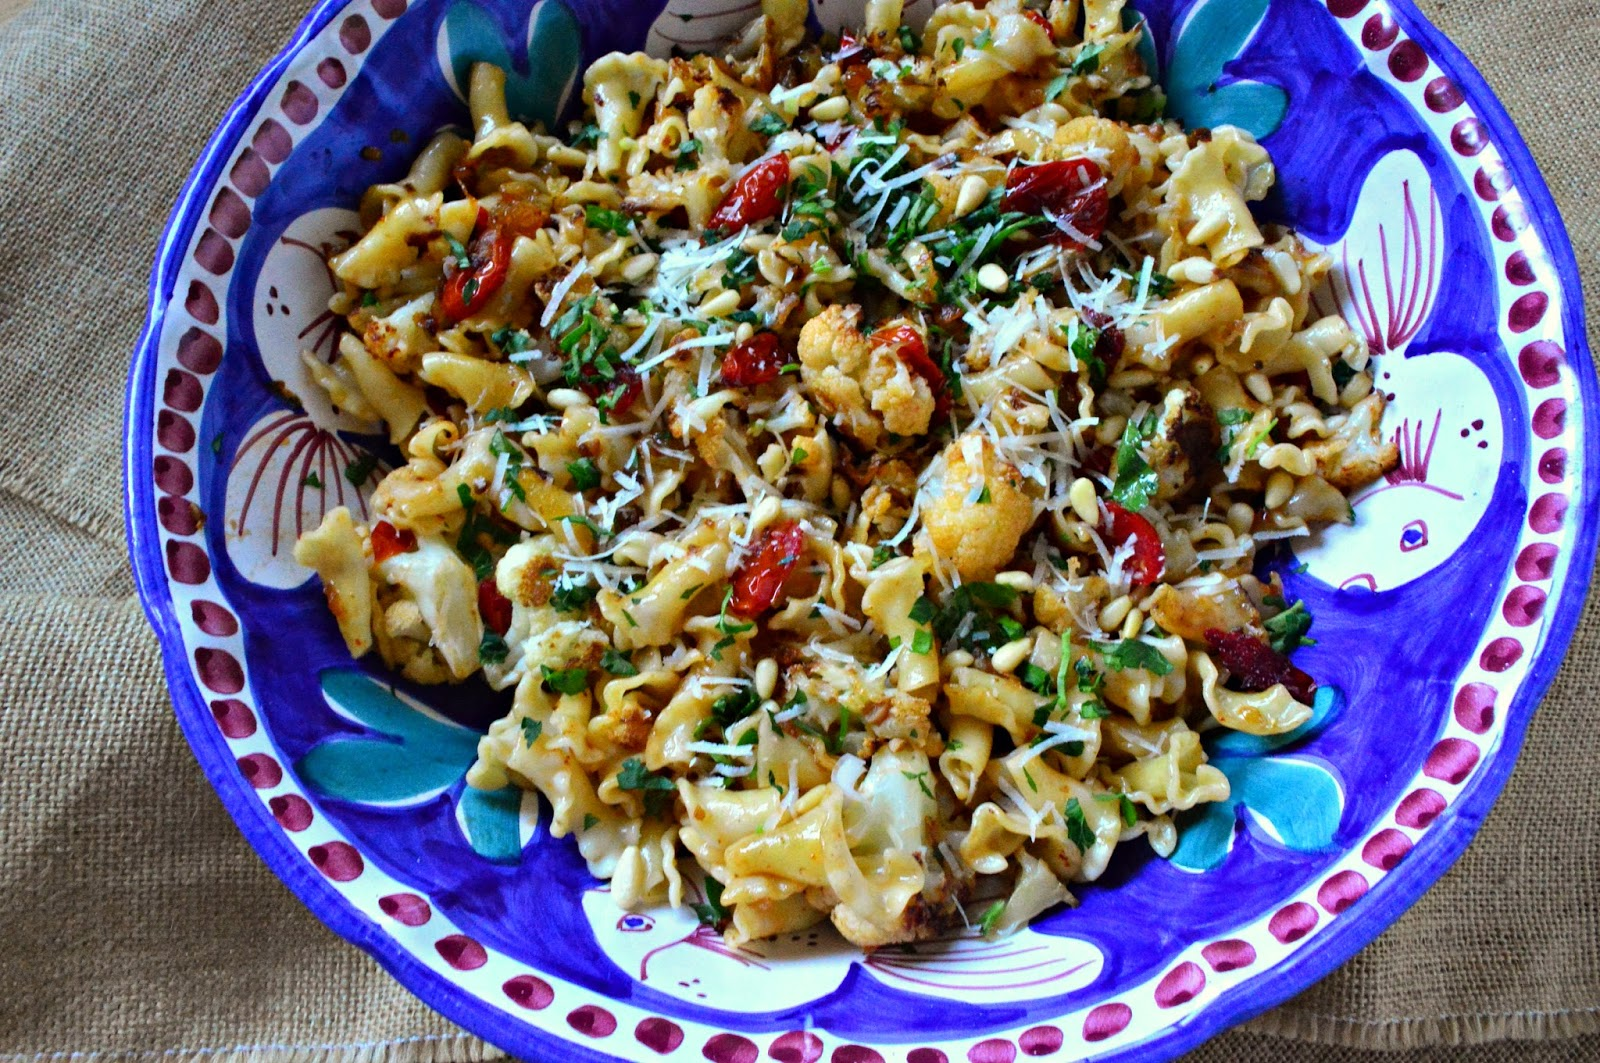 Pasta with Roasted Cauliflower, Raisins, Pine Nuts and Anchovies is a delicious pasta dish with lots of salty and sweet addictive flavors going on! You will love it! #cauliflower #pasta www.thisishowicook.com